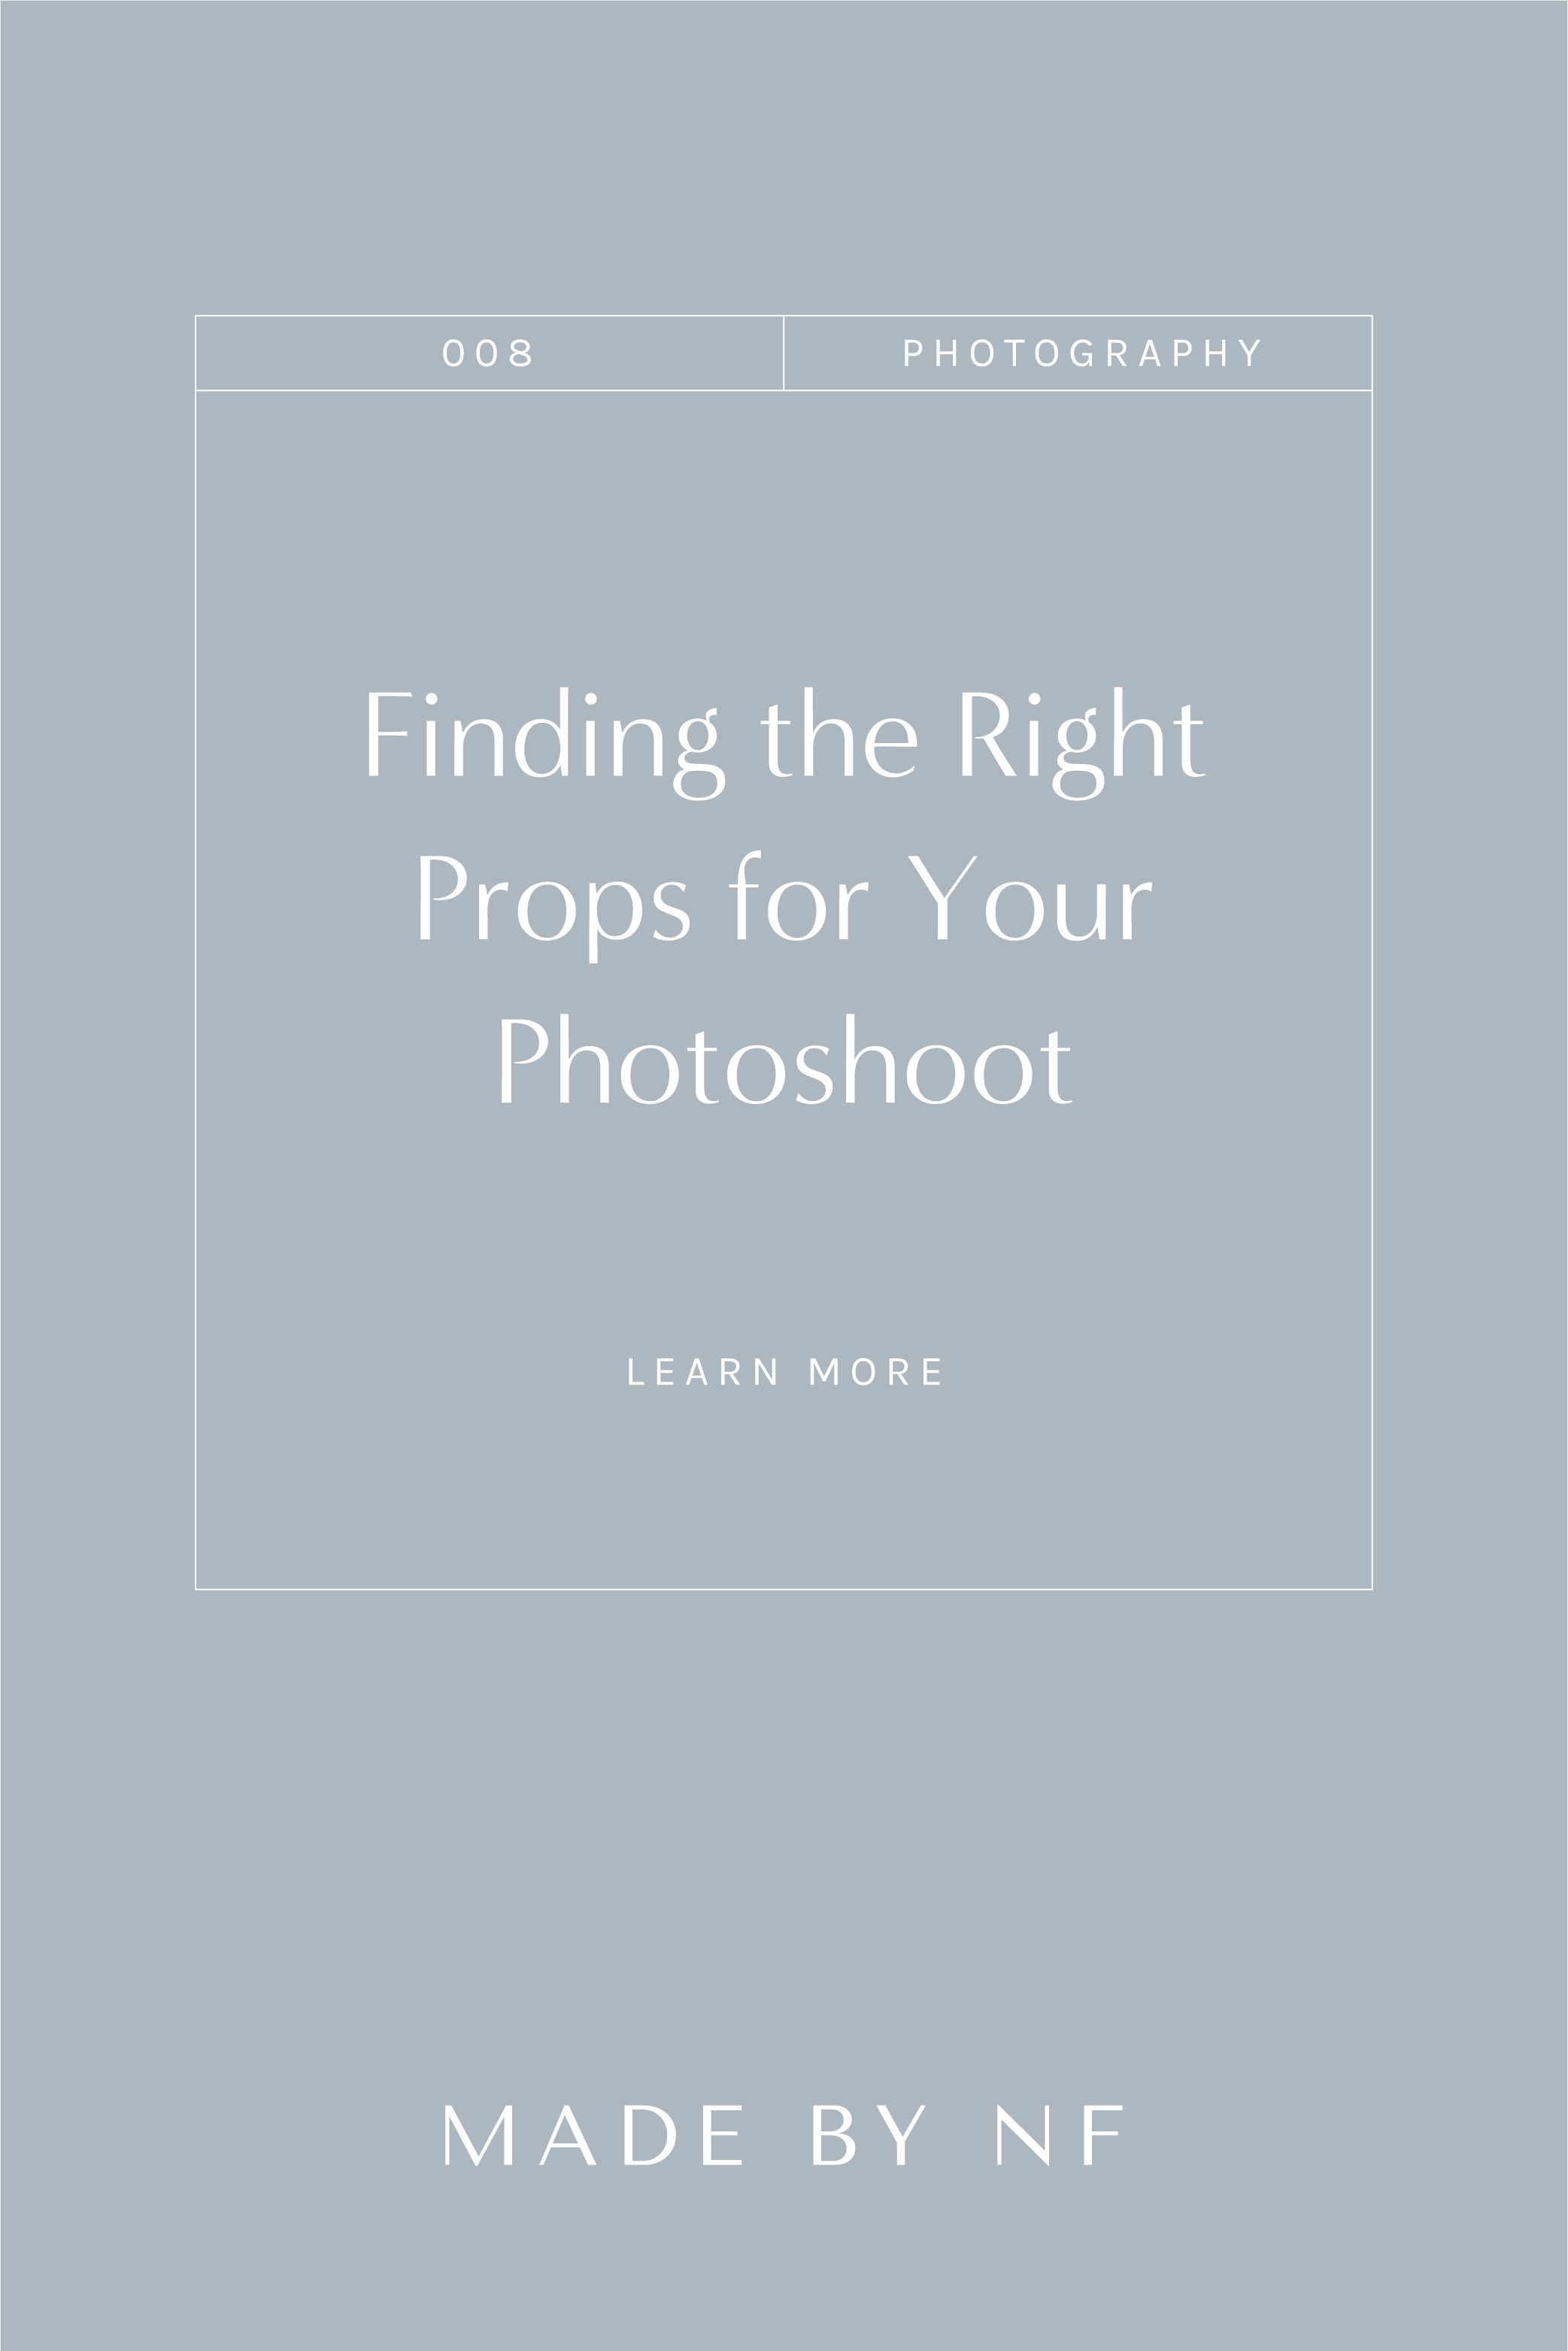 Three Tips on Finding the Right Props for Your Photoshoot - Photography Tips for Lifestyle Photoshoots